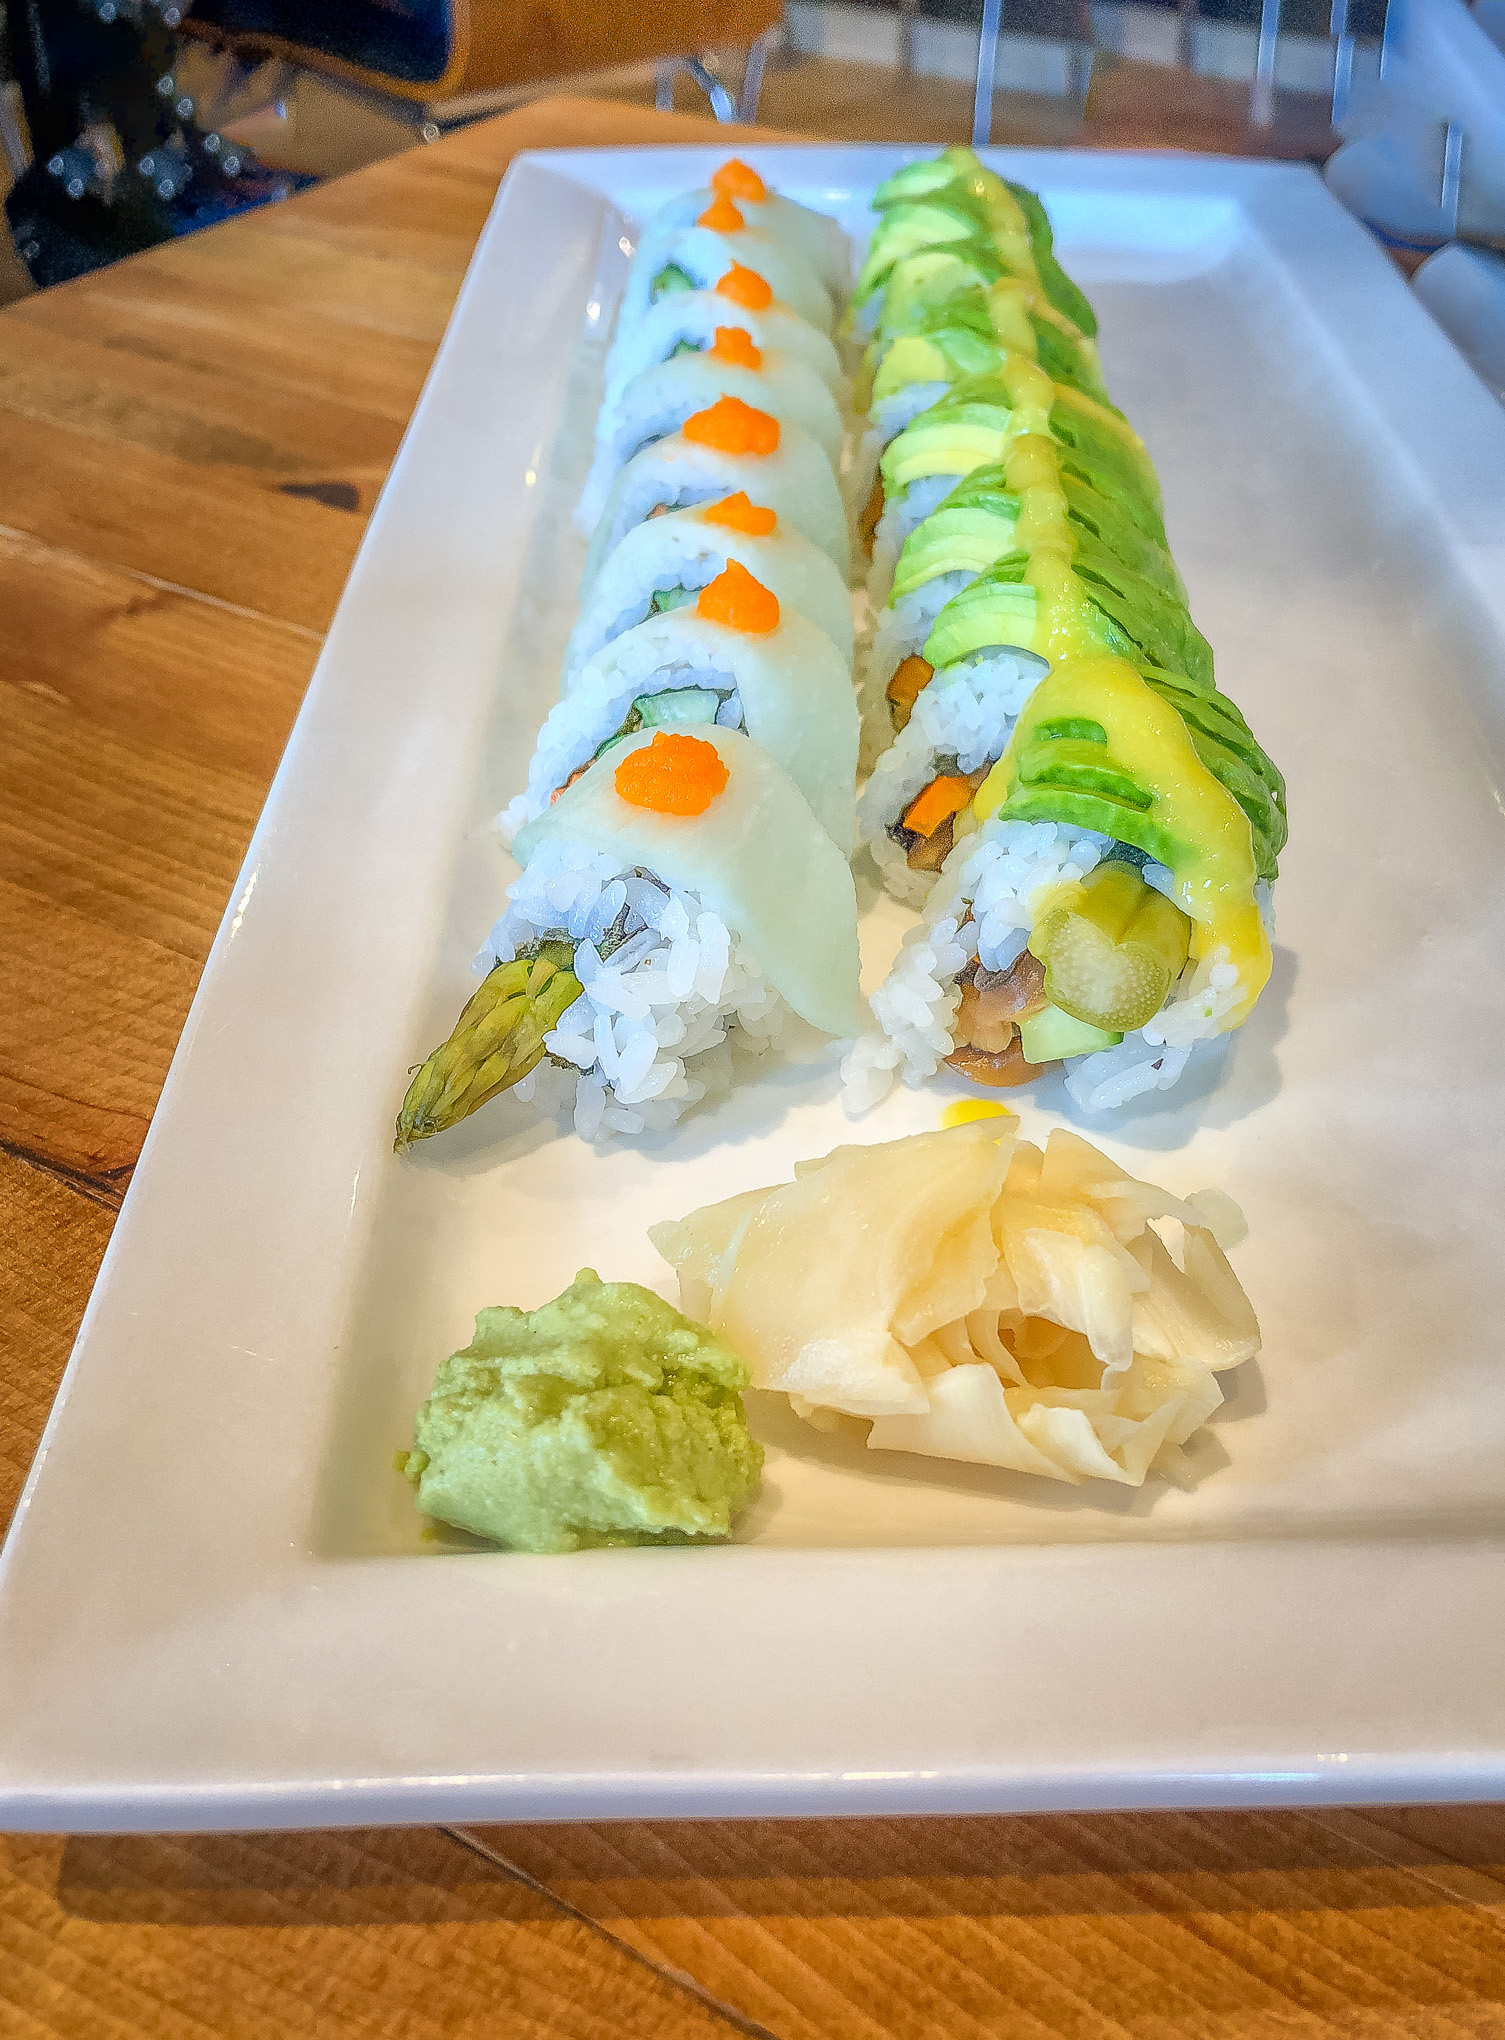 Oblong white plate with two rows of sushi rolls